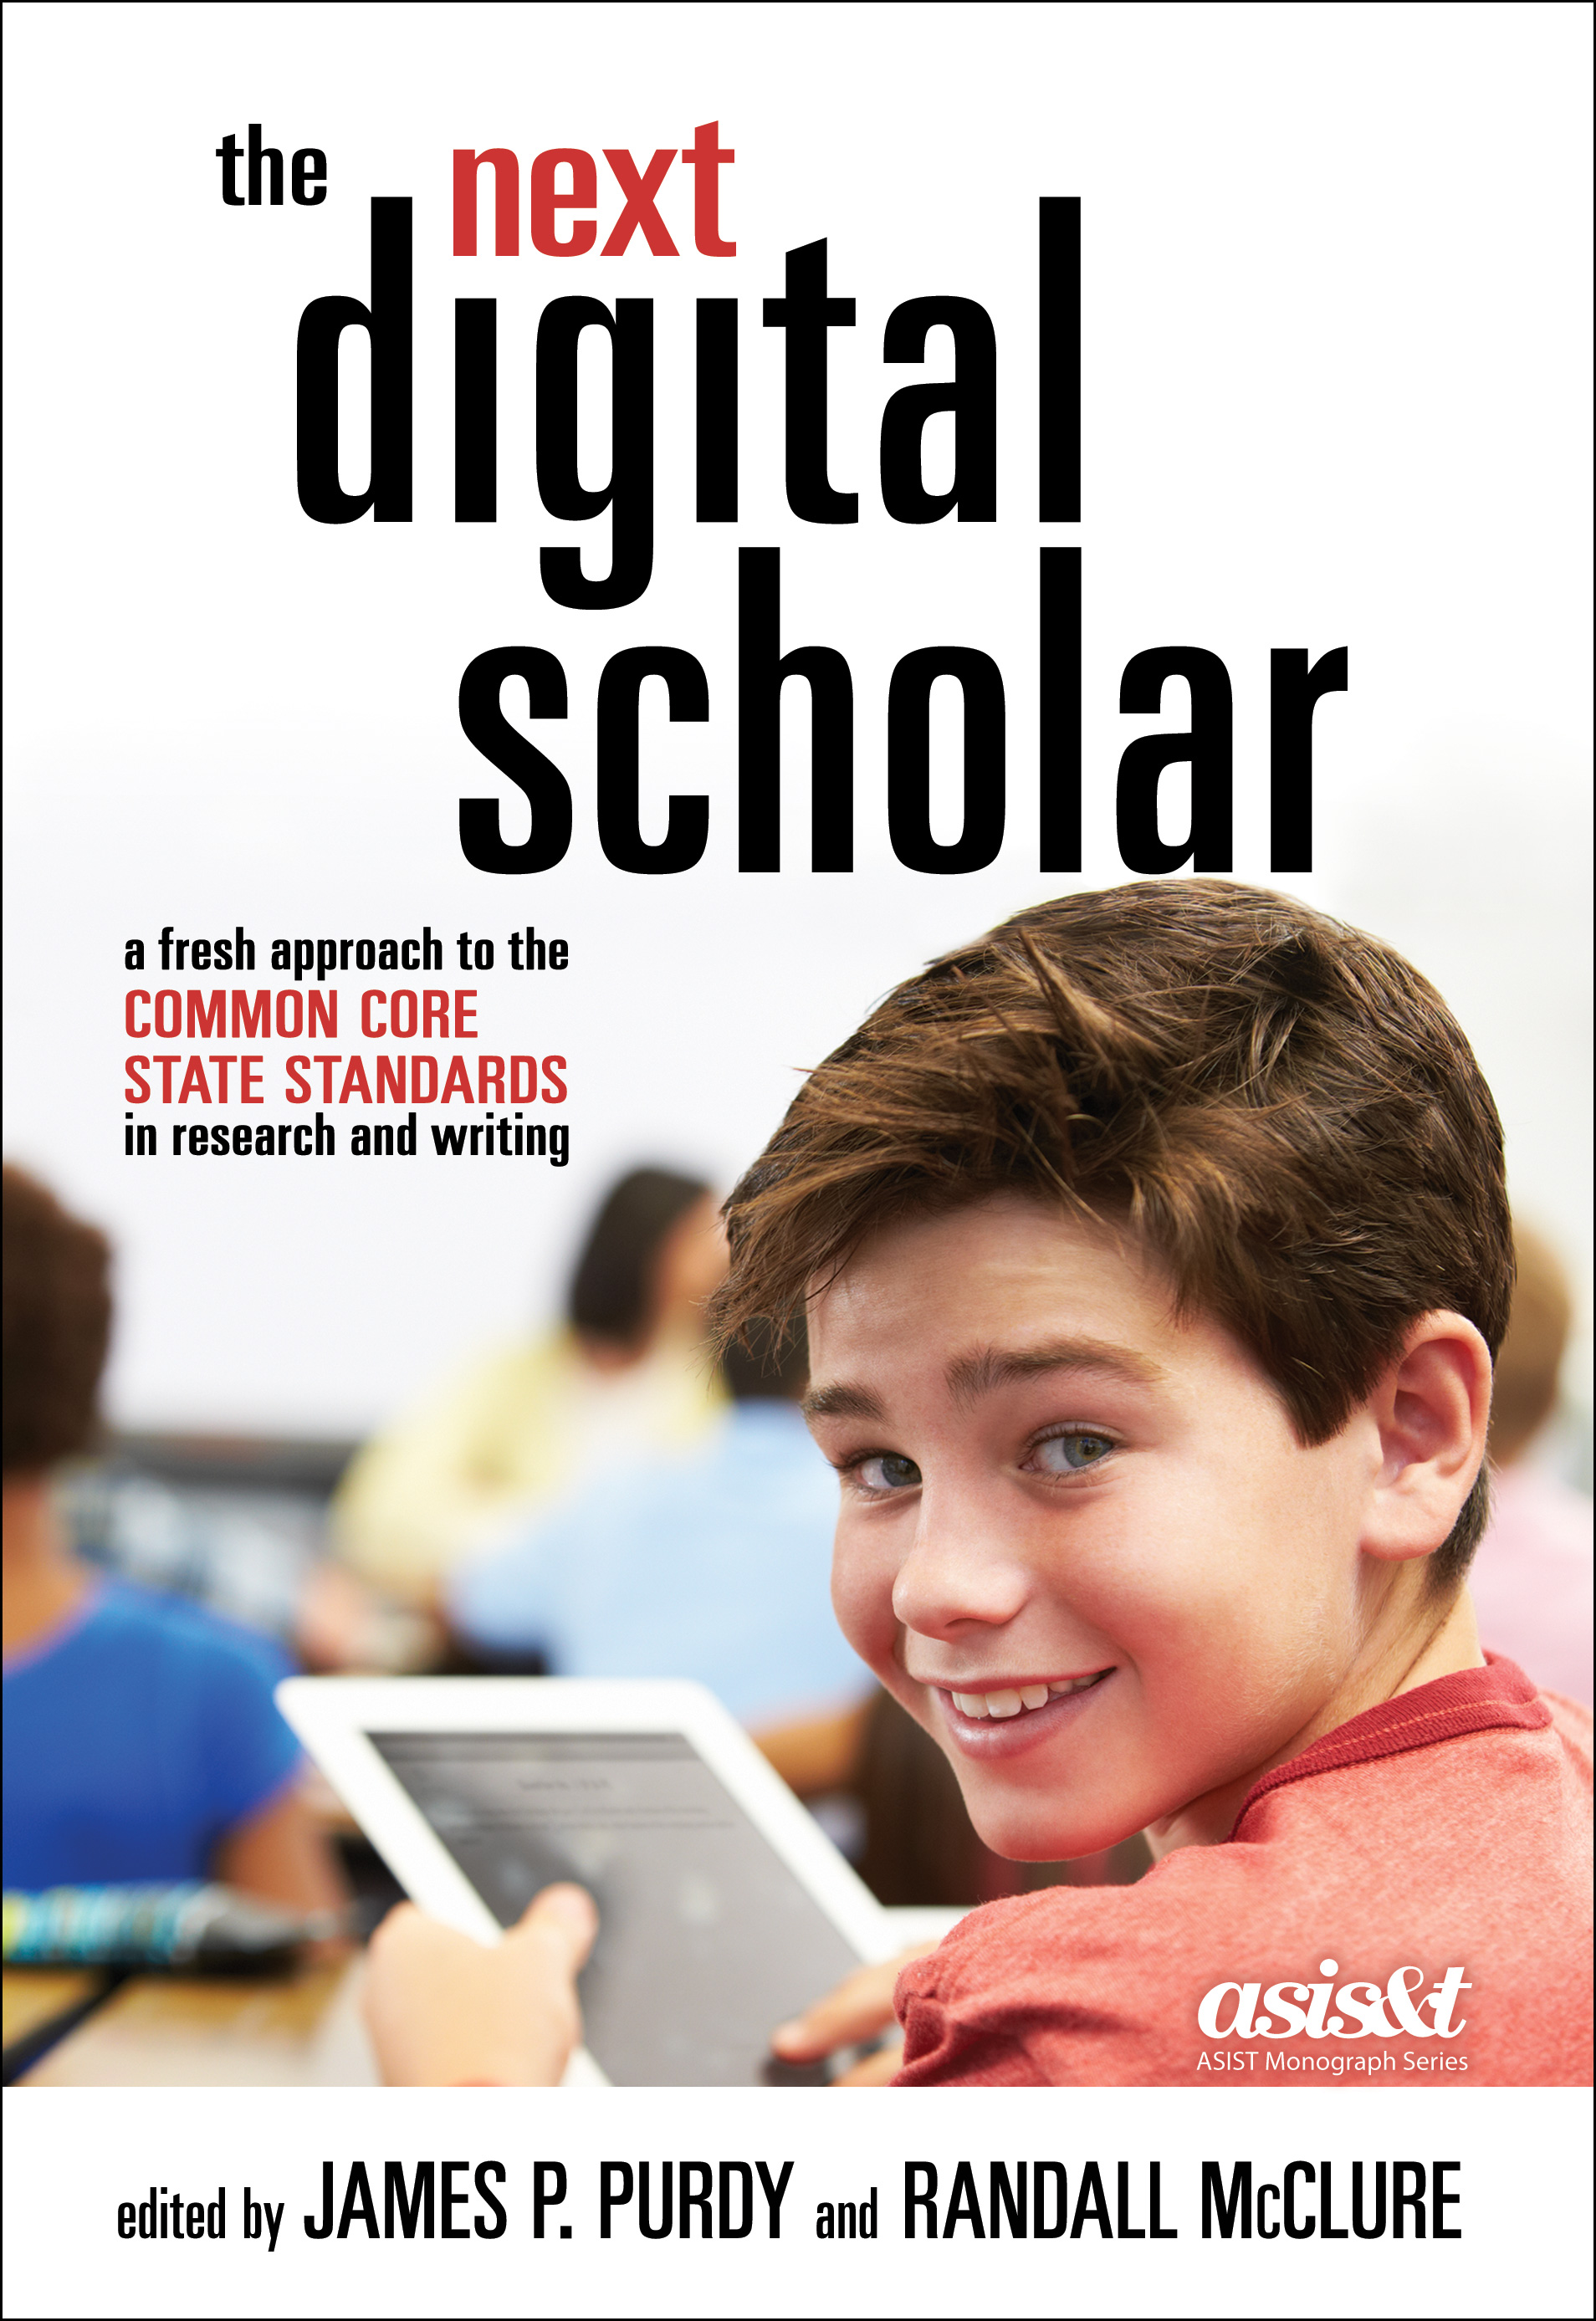 The Next Digital Scholar: A Fresh Approach to the Common Core State Standards in Research and Writing